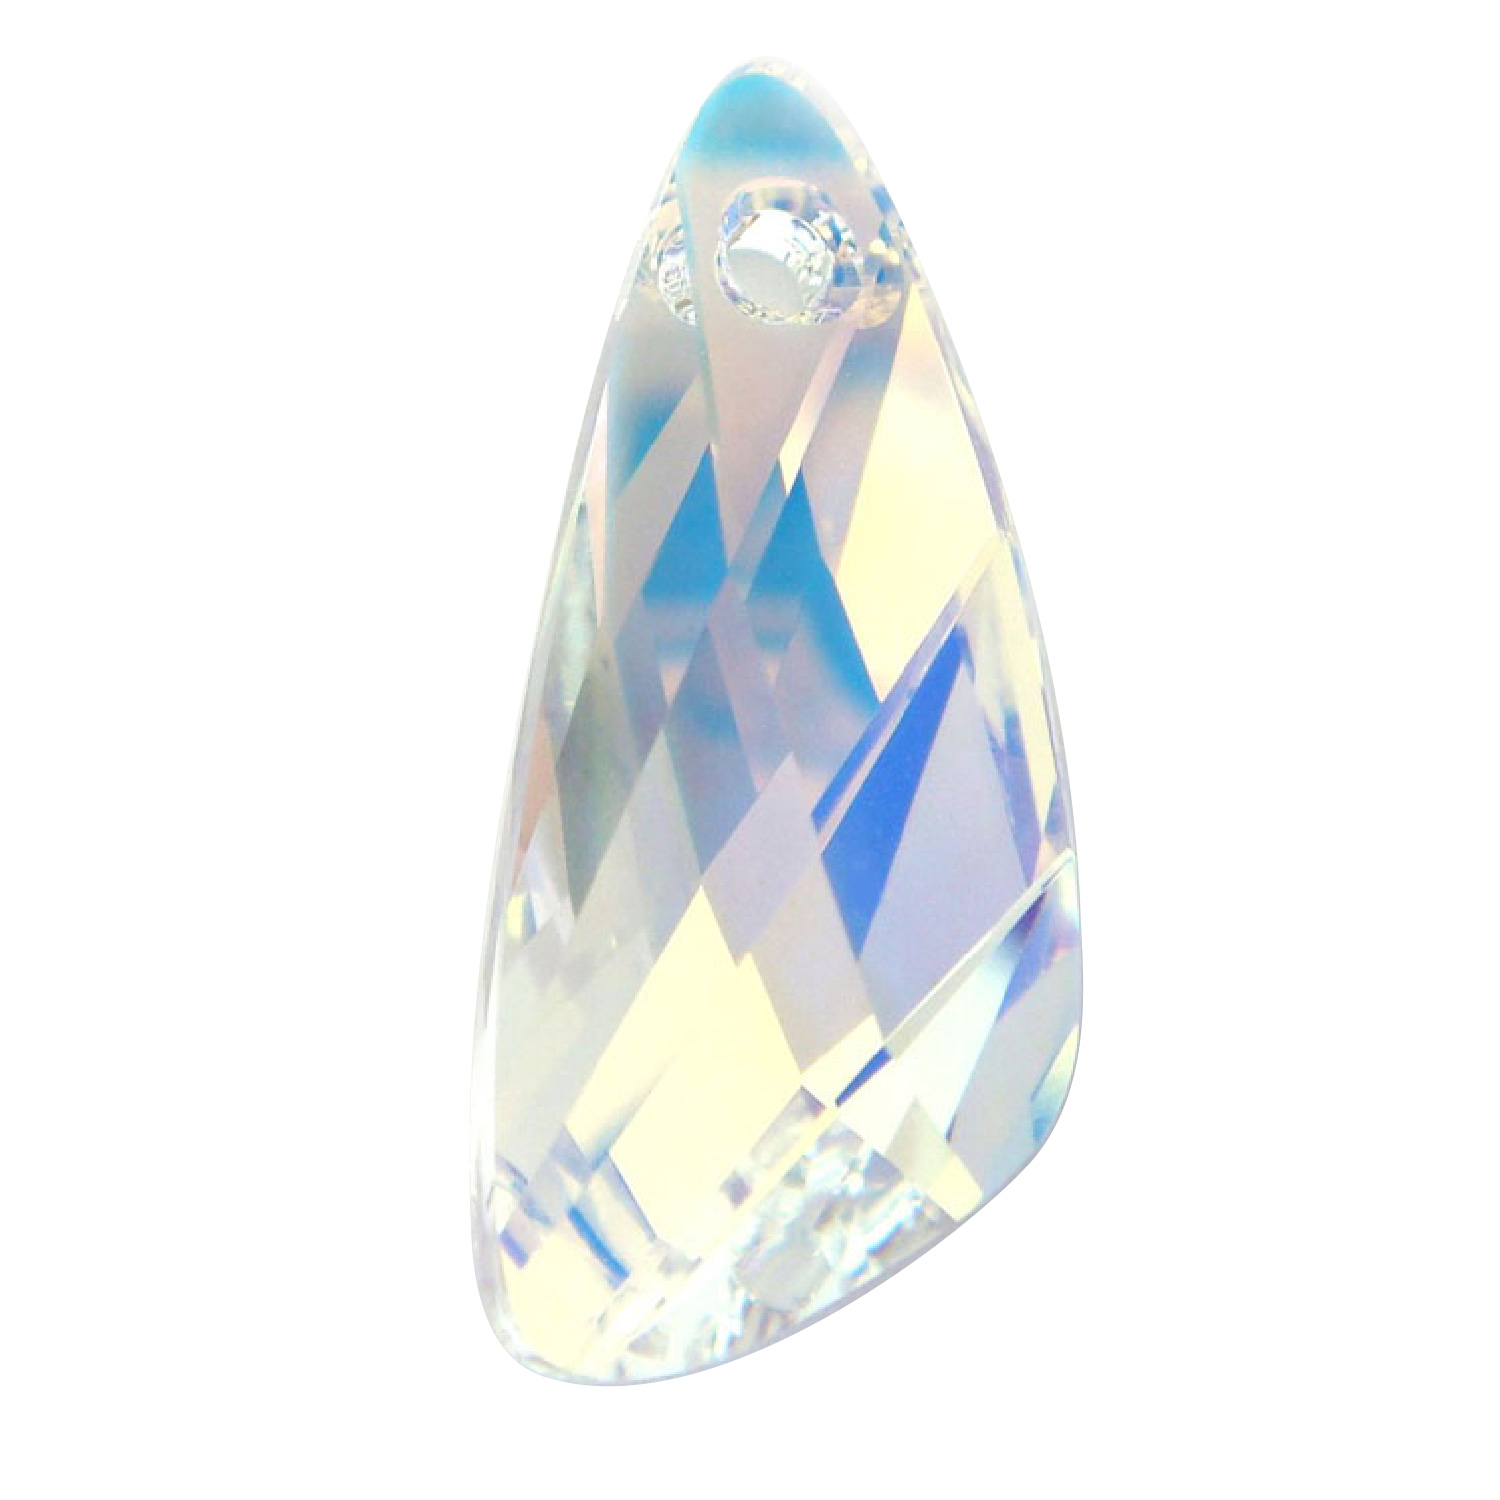 1 SWAROVSKI Crystal 6690 Wing Pendant Clear AB  23mm